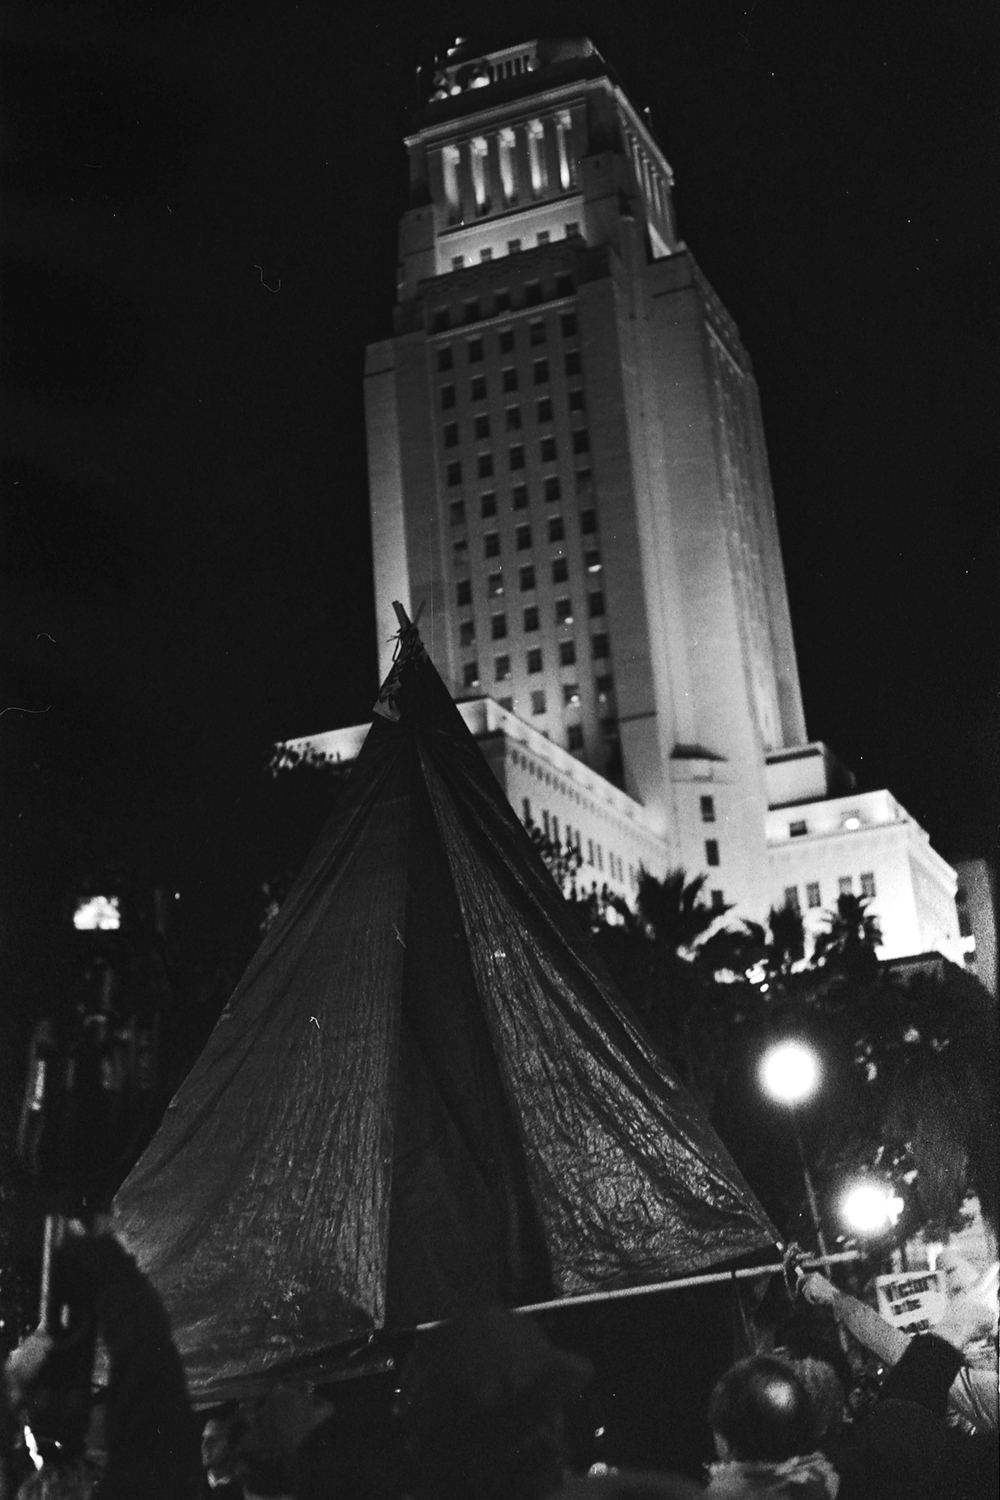 A makeshift tent in the foreground with Los Angeles City Hall in the background during the Occupy L.A. eviction in DTLA